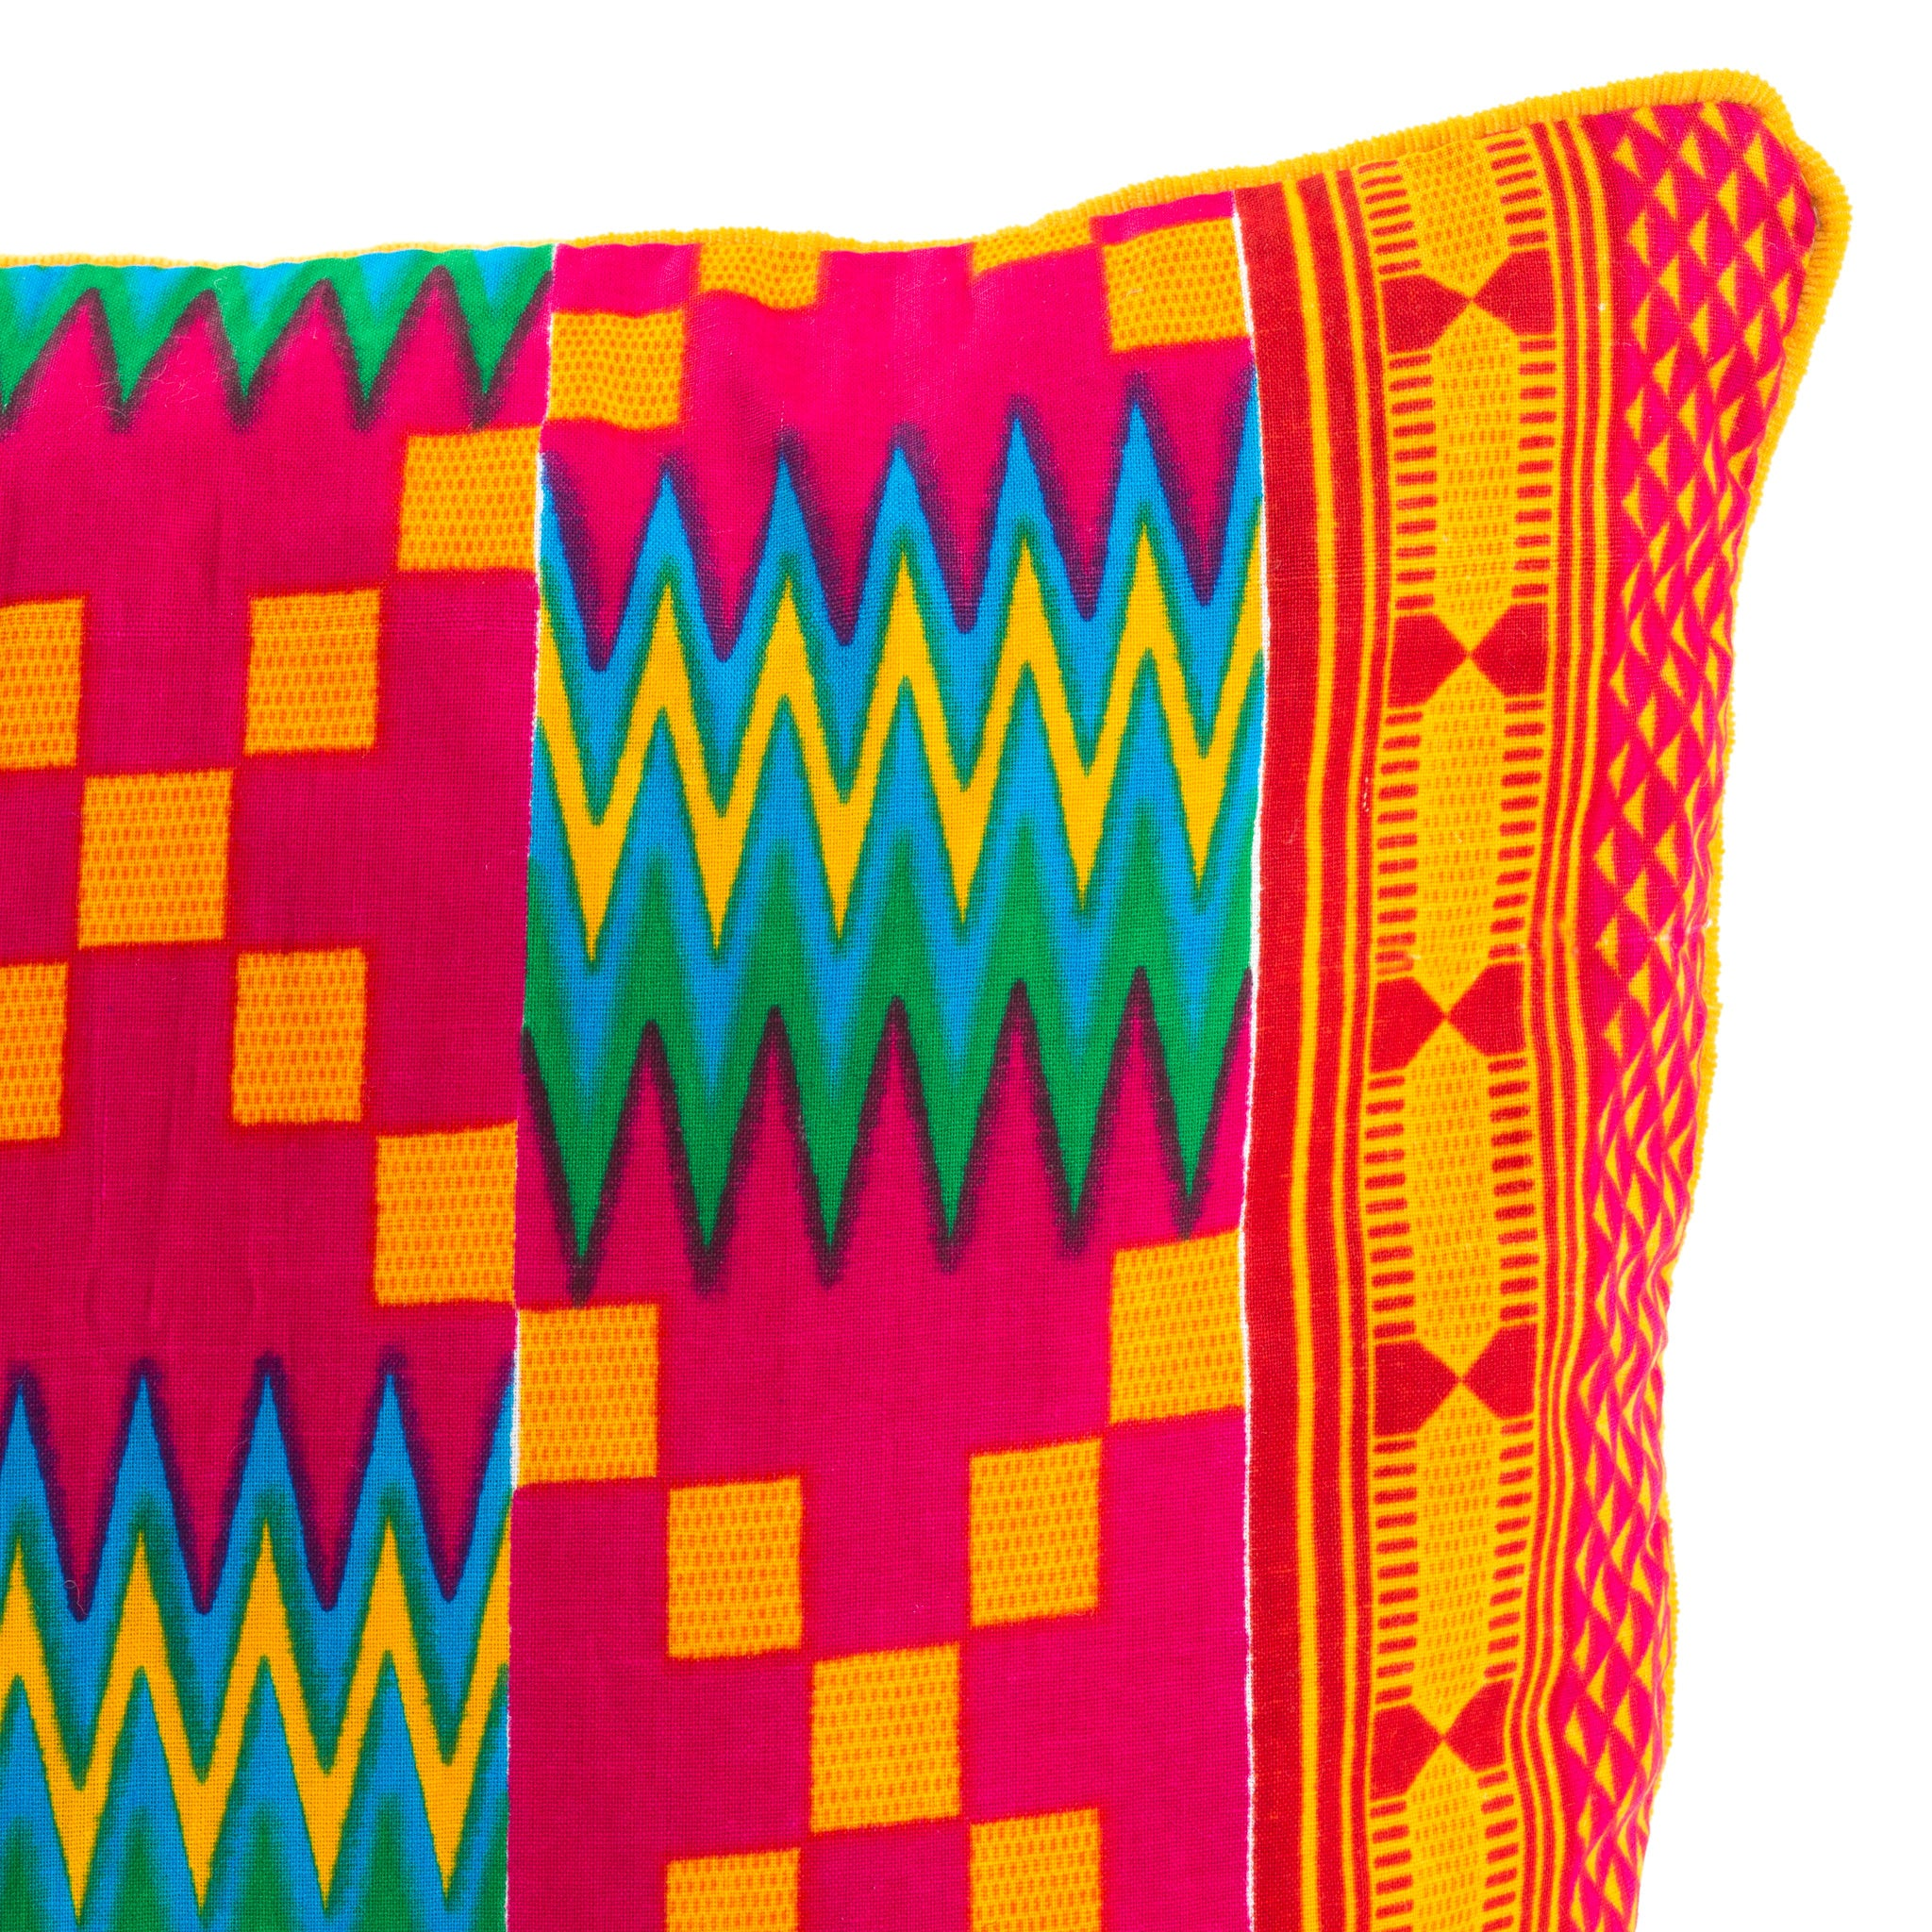 Kente/Printed/Cotton/Pattern/Ghana/Africa/Scatter/Cushion/Bright/Pink/Green/Blue/Orange/Detail/